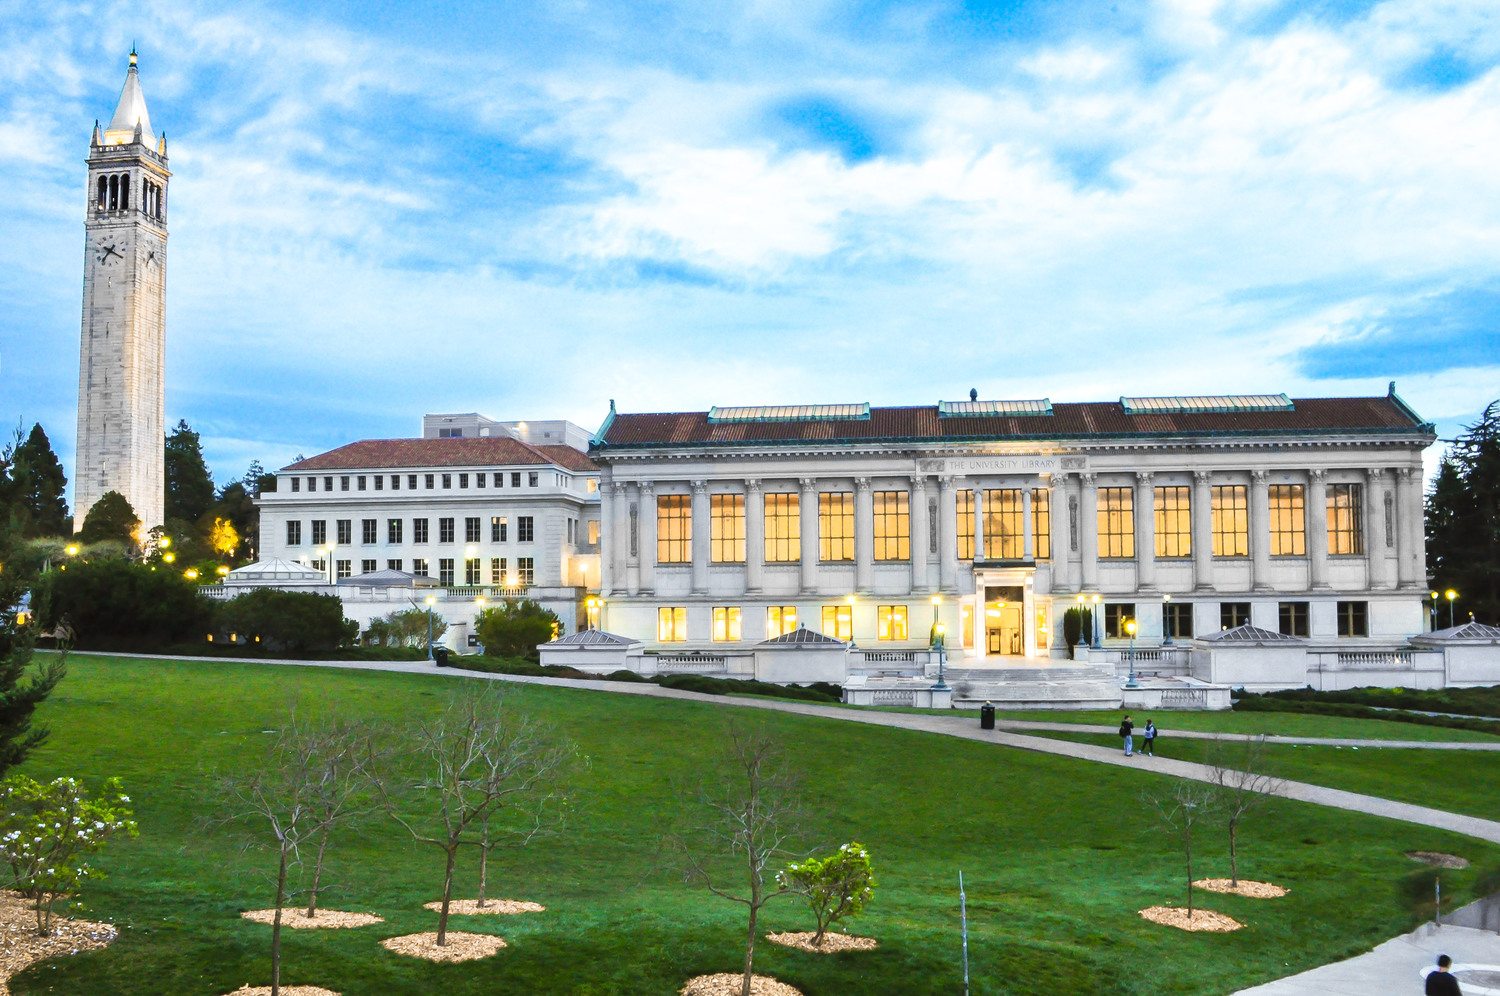 University of California- Berkeley